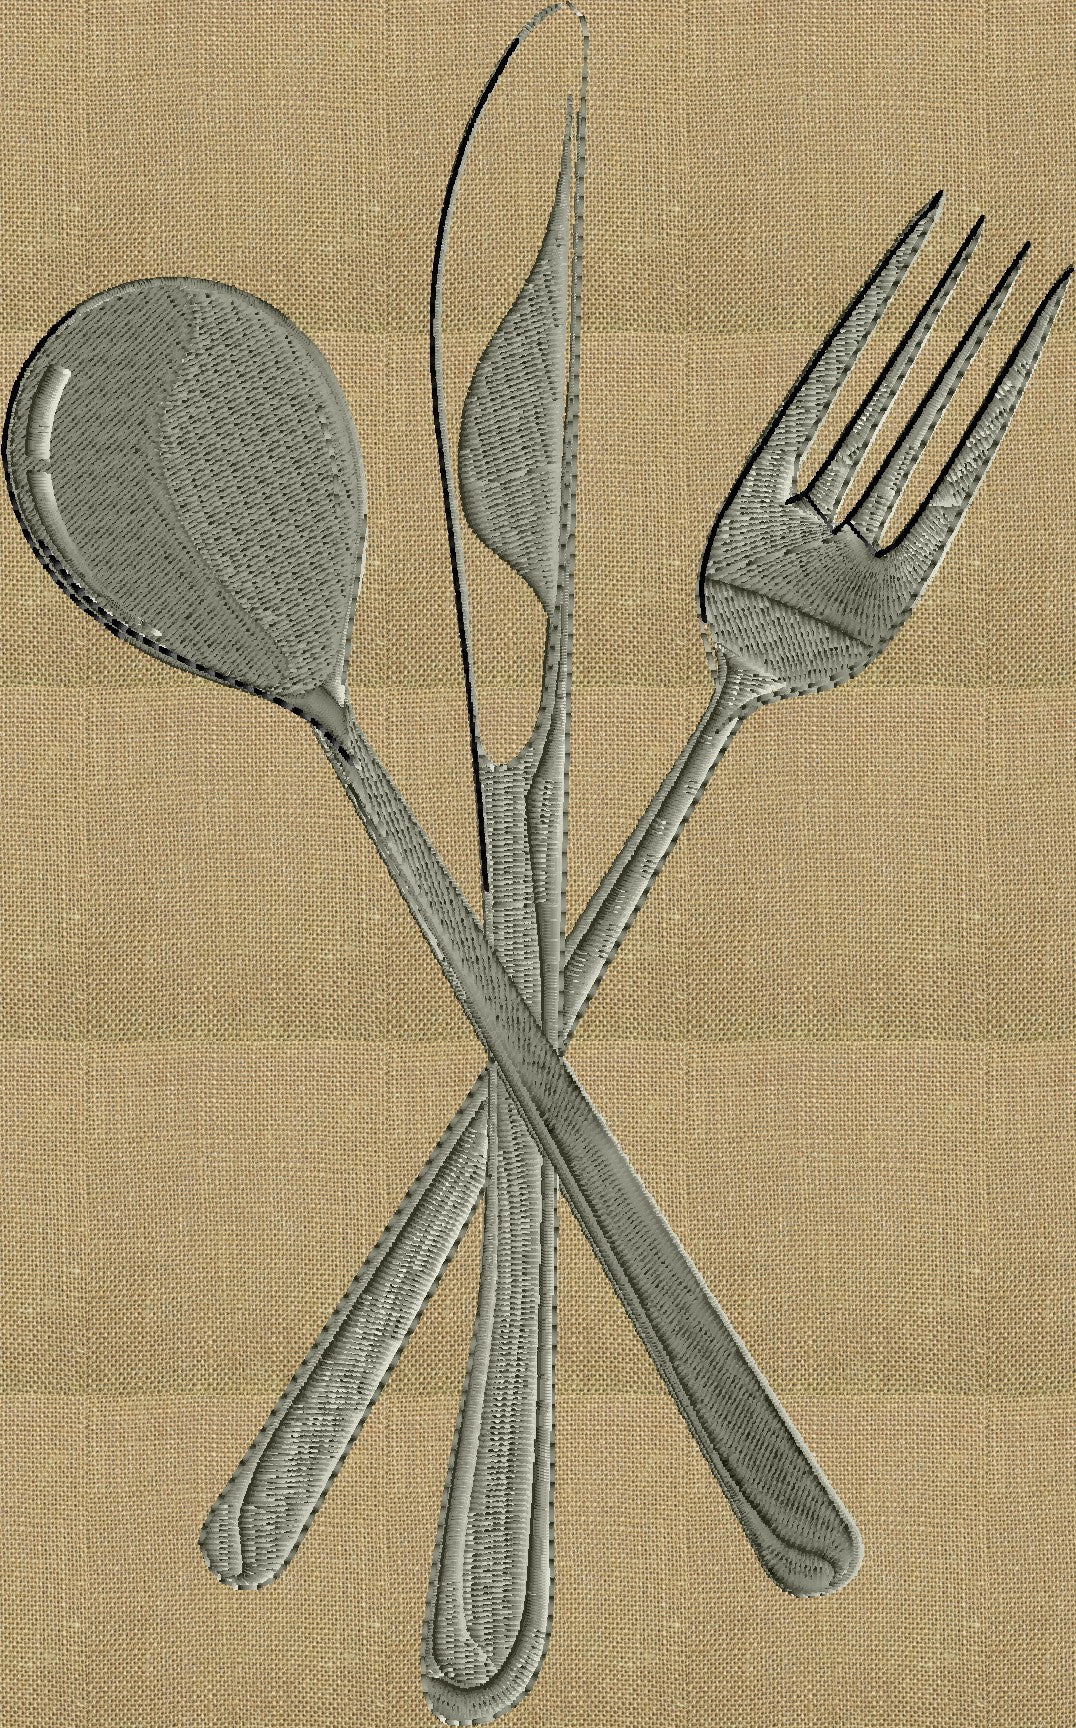 Flatware Fork Knife Spoon - EMBROIDERY DESIGN FILE - fun stuff